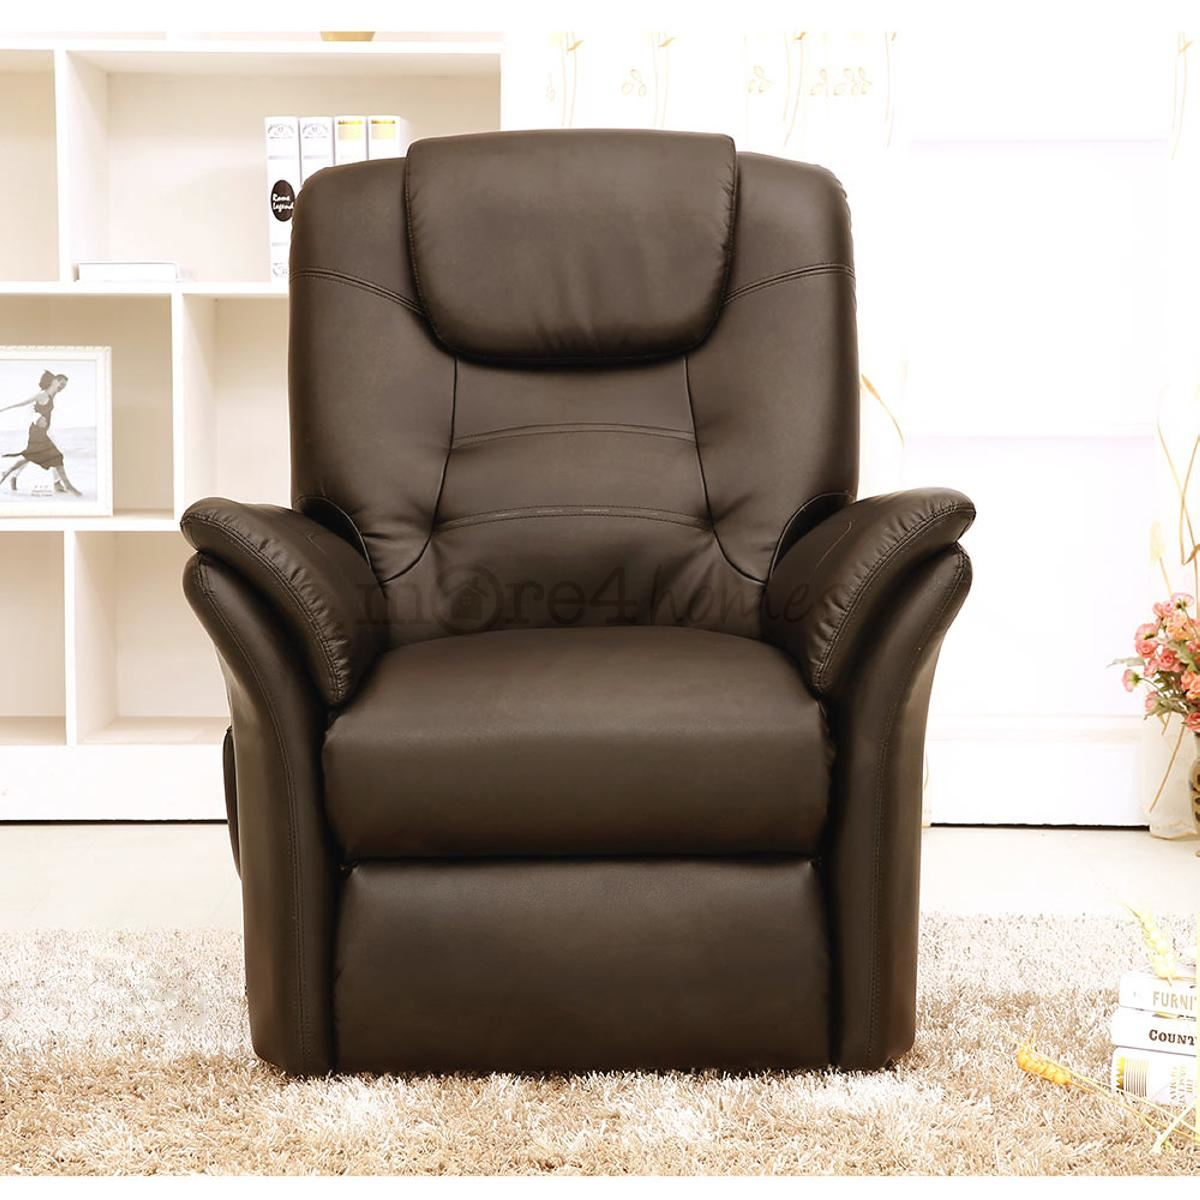 Real Leather Recliner Chairs Windsor Brown Electric Rise Recliner Real Leather Armchair